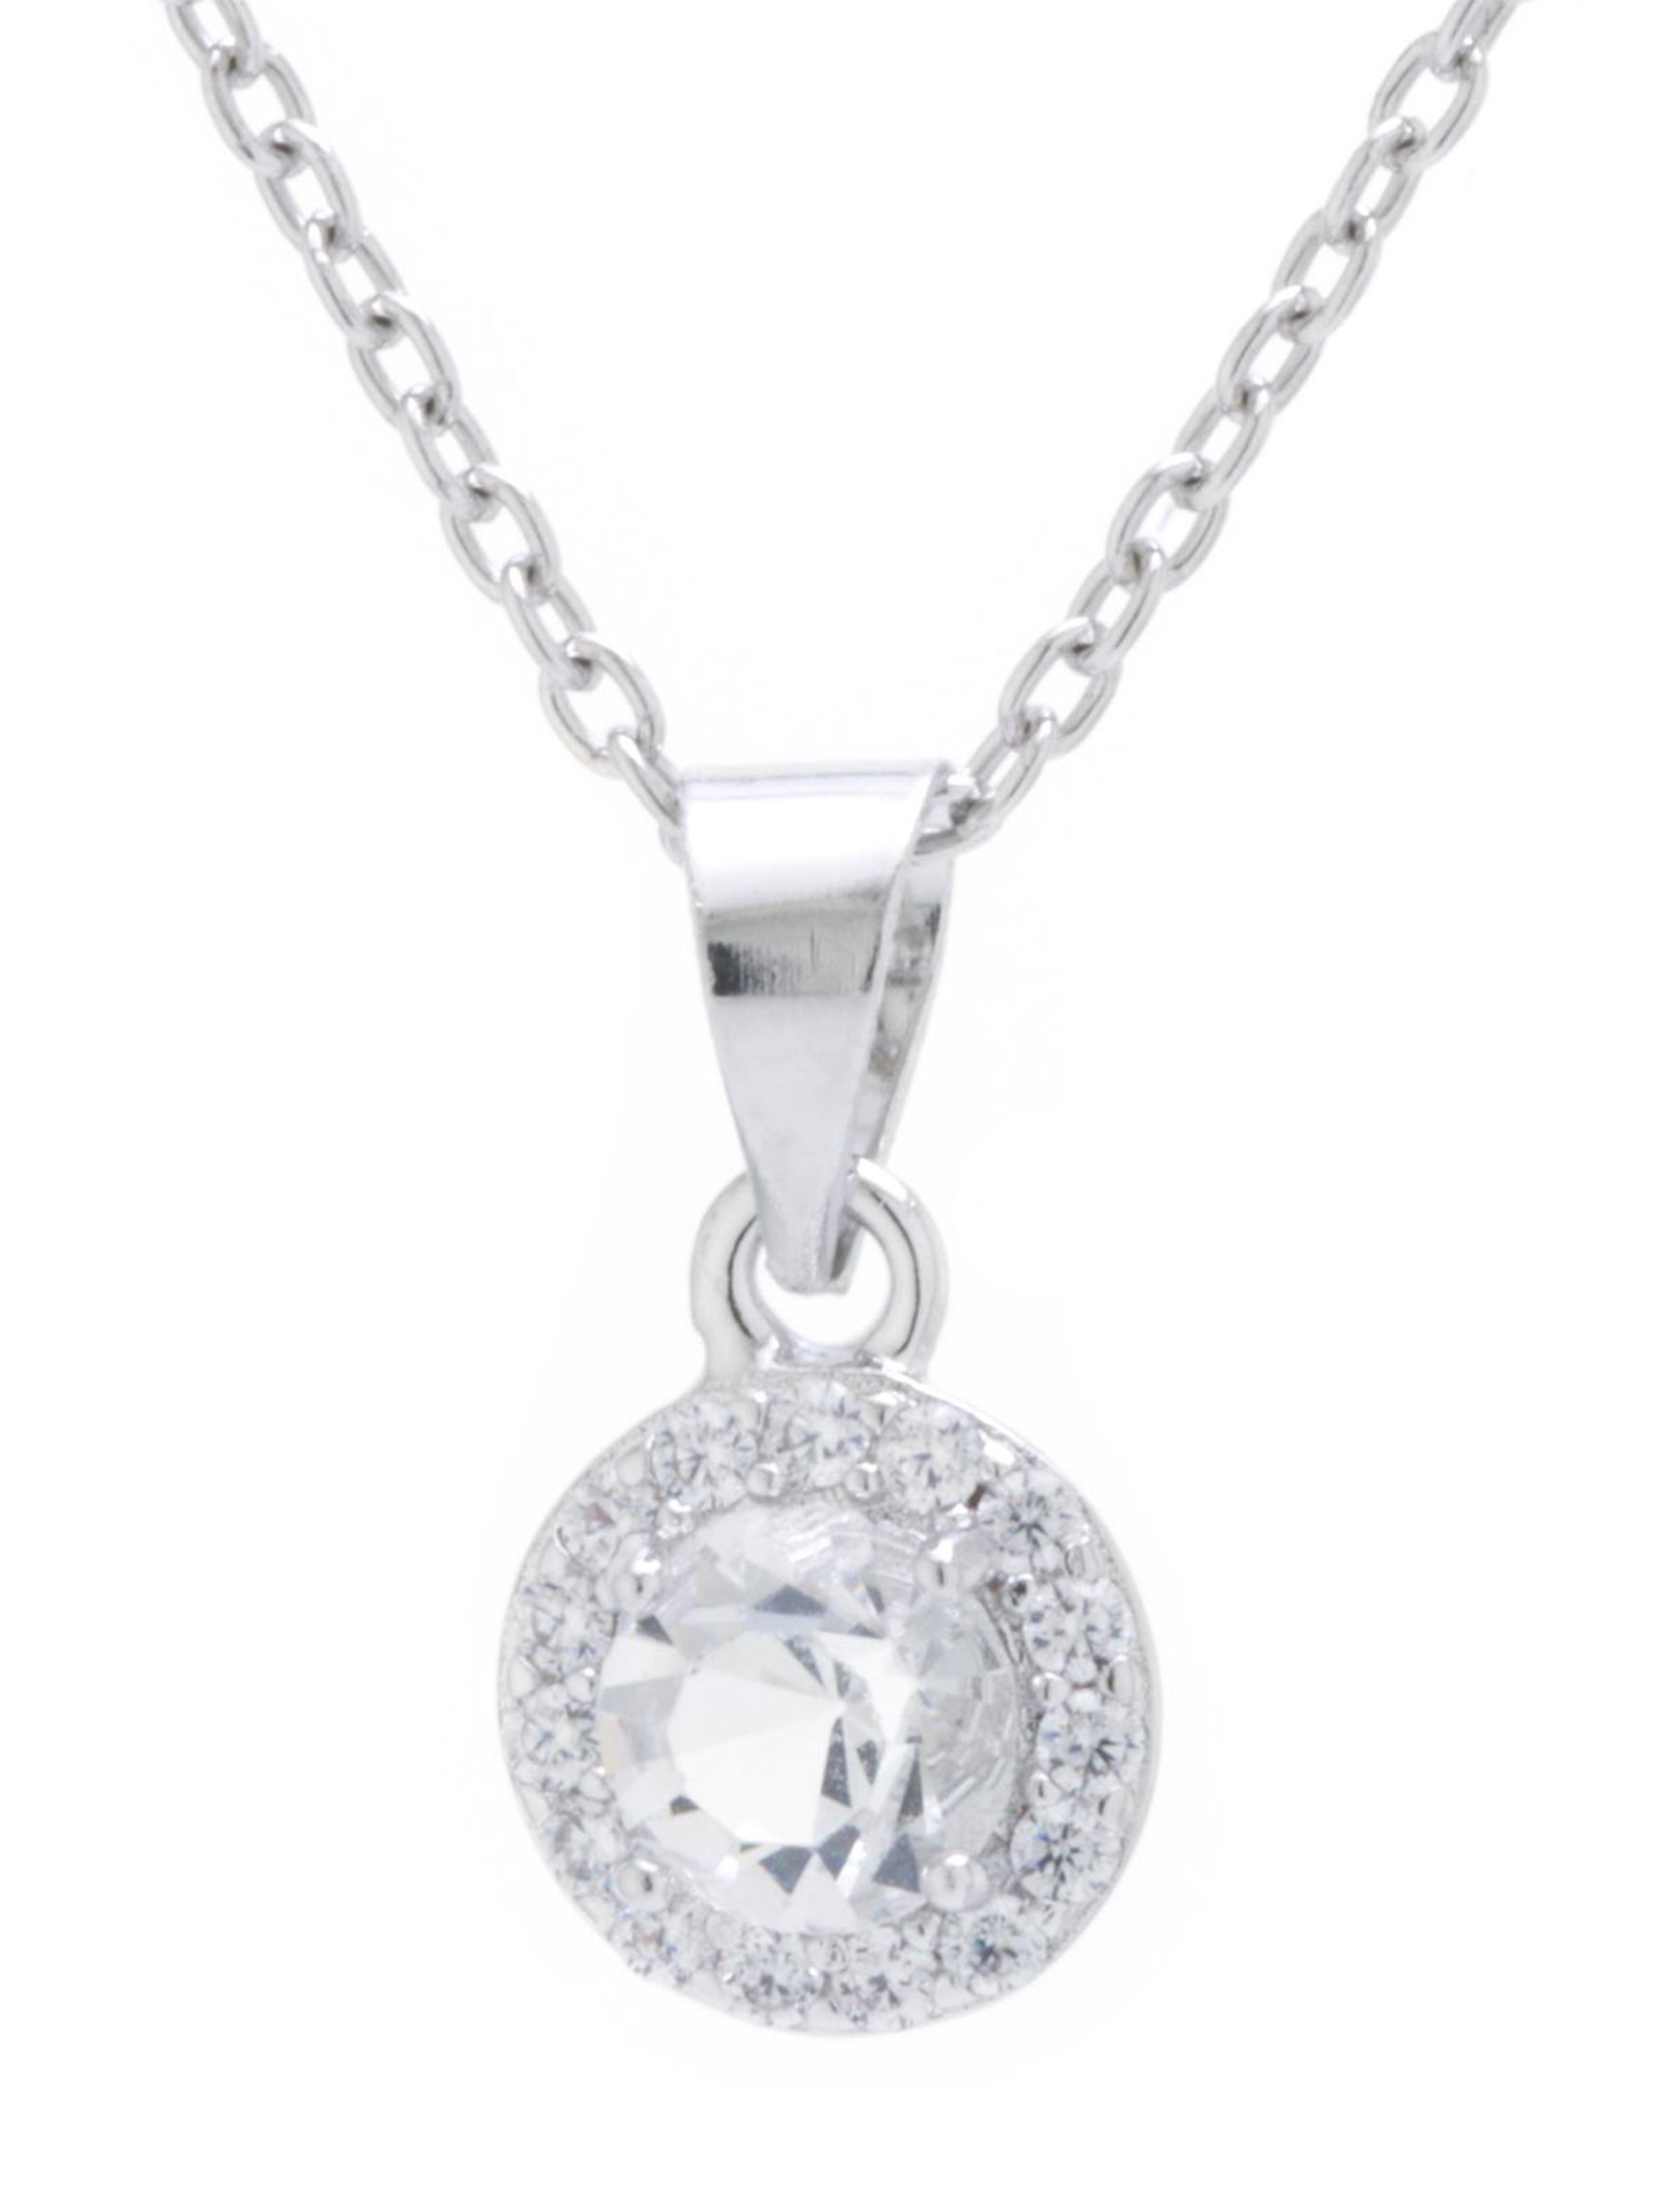 Athra Fine Silver Plated Necklaces & Pendants Fine Jewelry